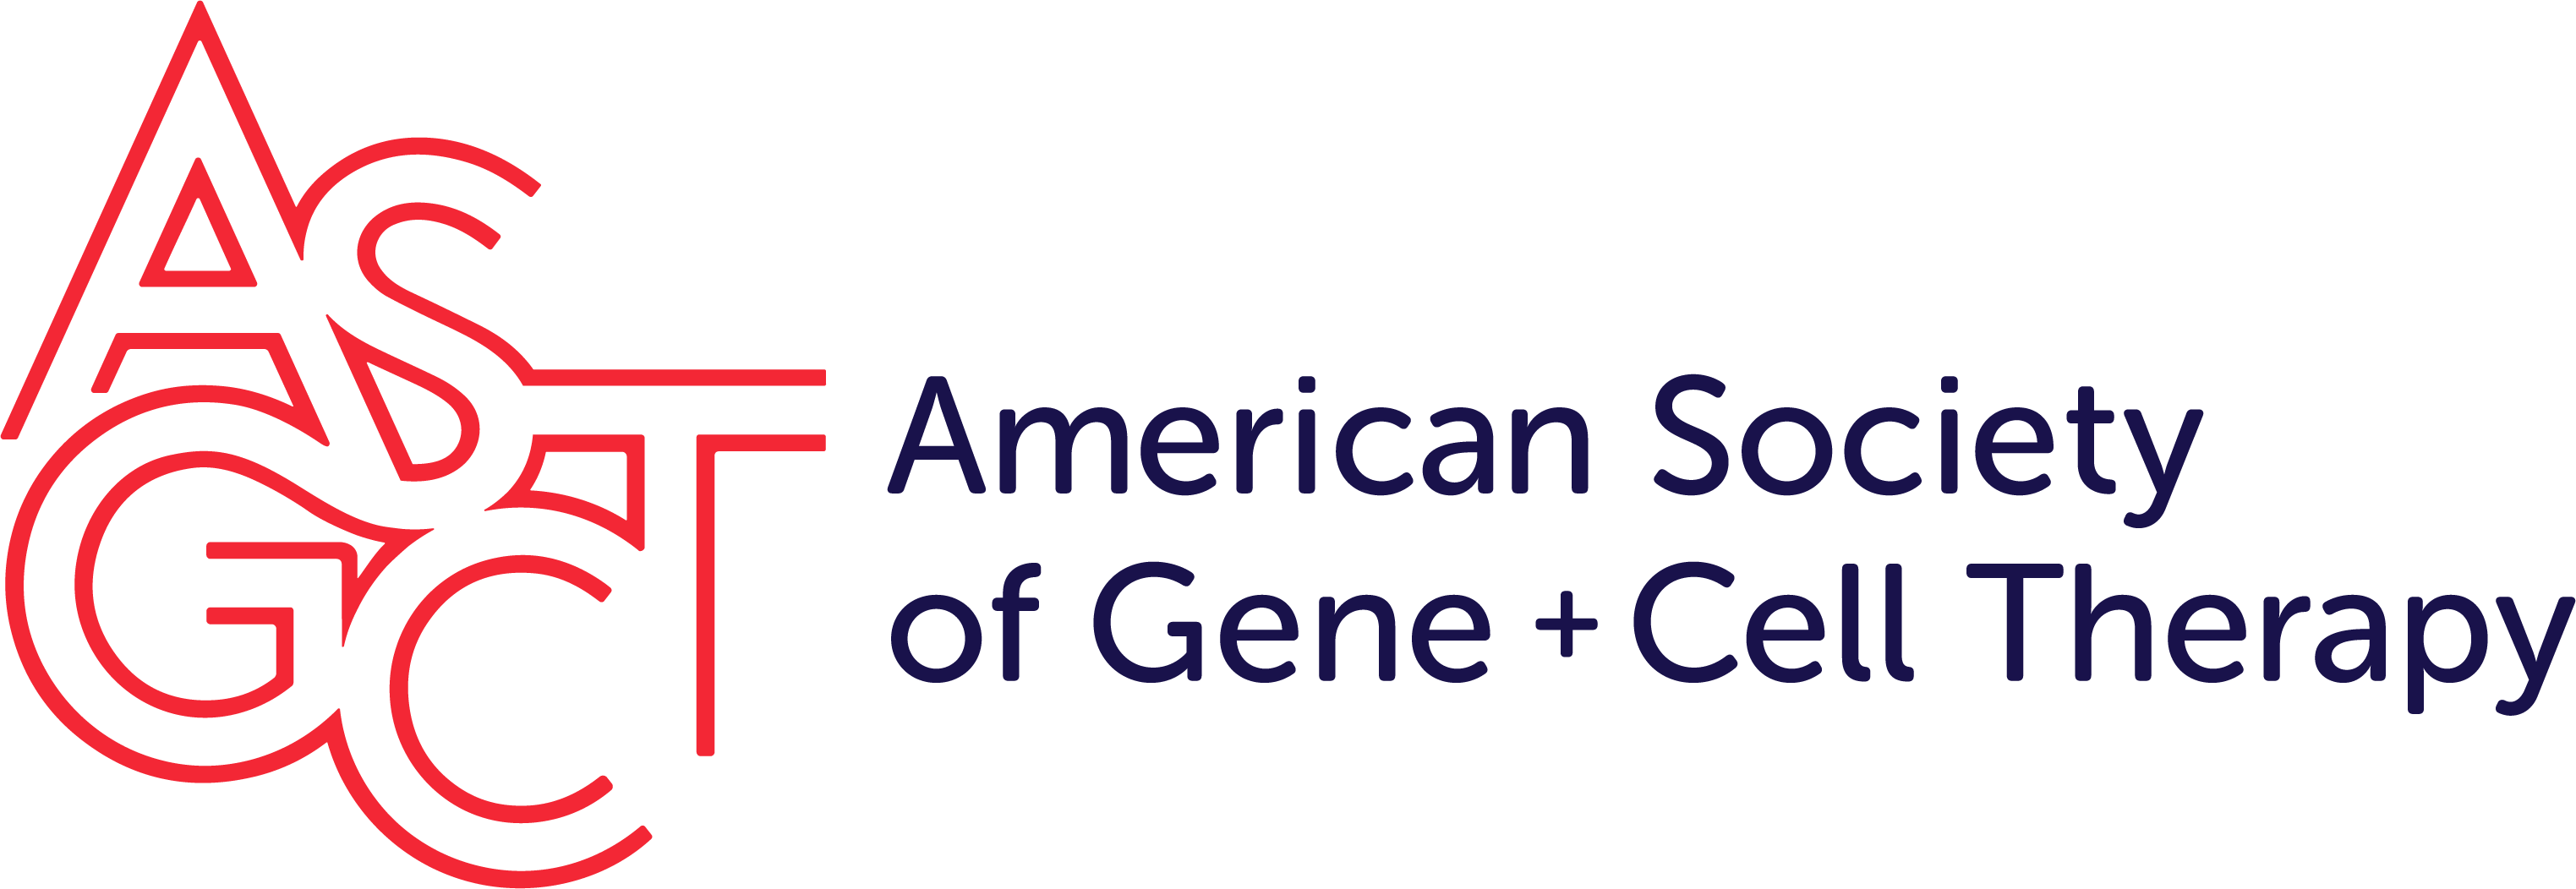 American Society of Gene+Cell Therapy logo